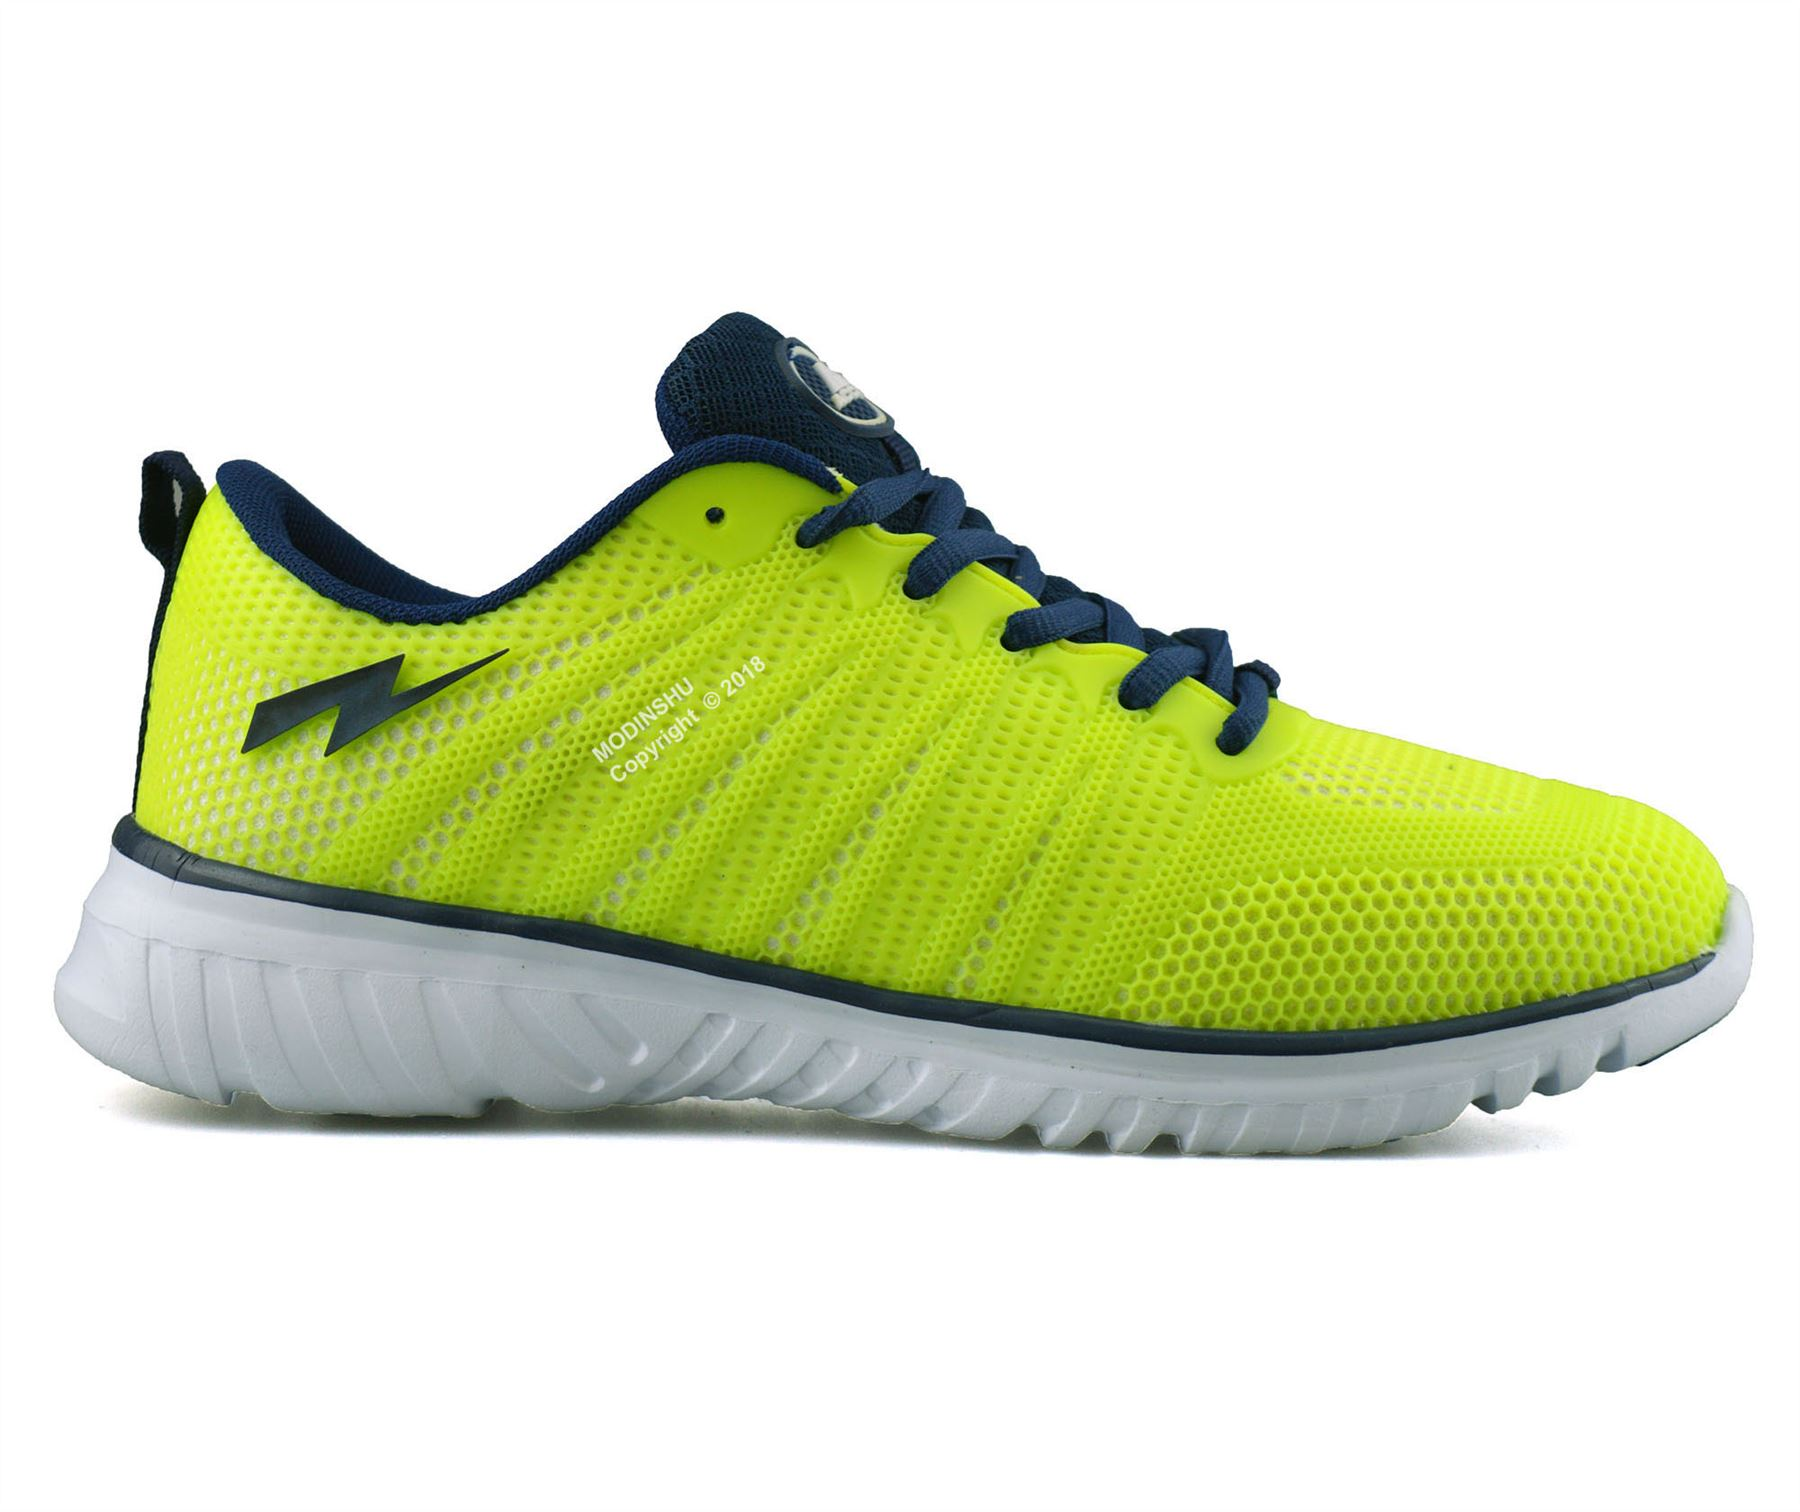 Mens-Casual-Running-Walking-Sports-Gym-Shock-Absorbing-Lace-Trainers-Shoes-Size thumbnail 20